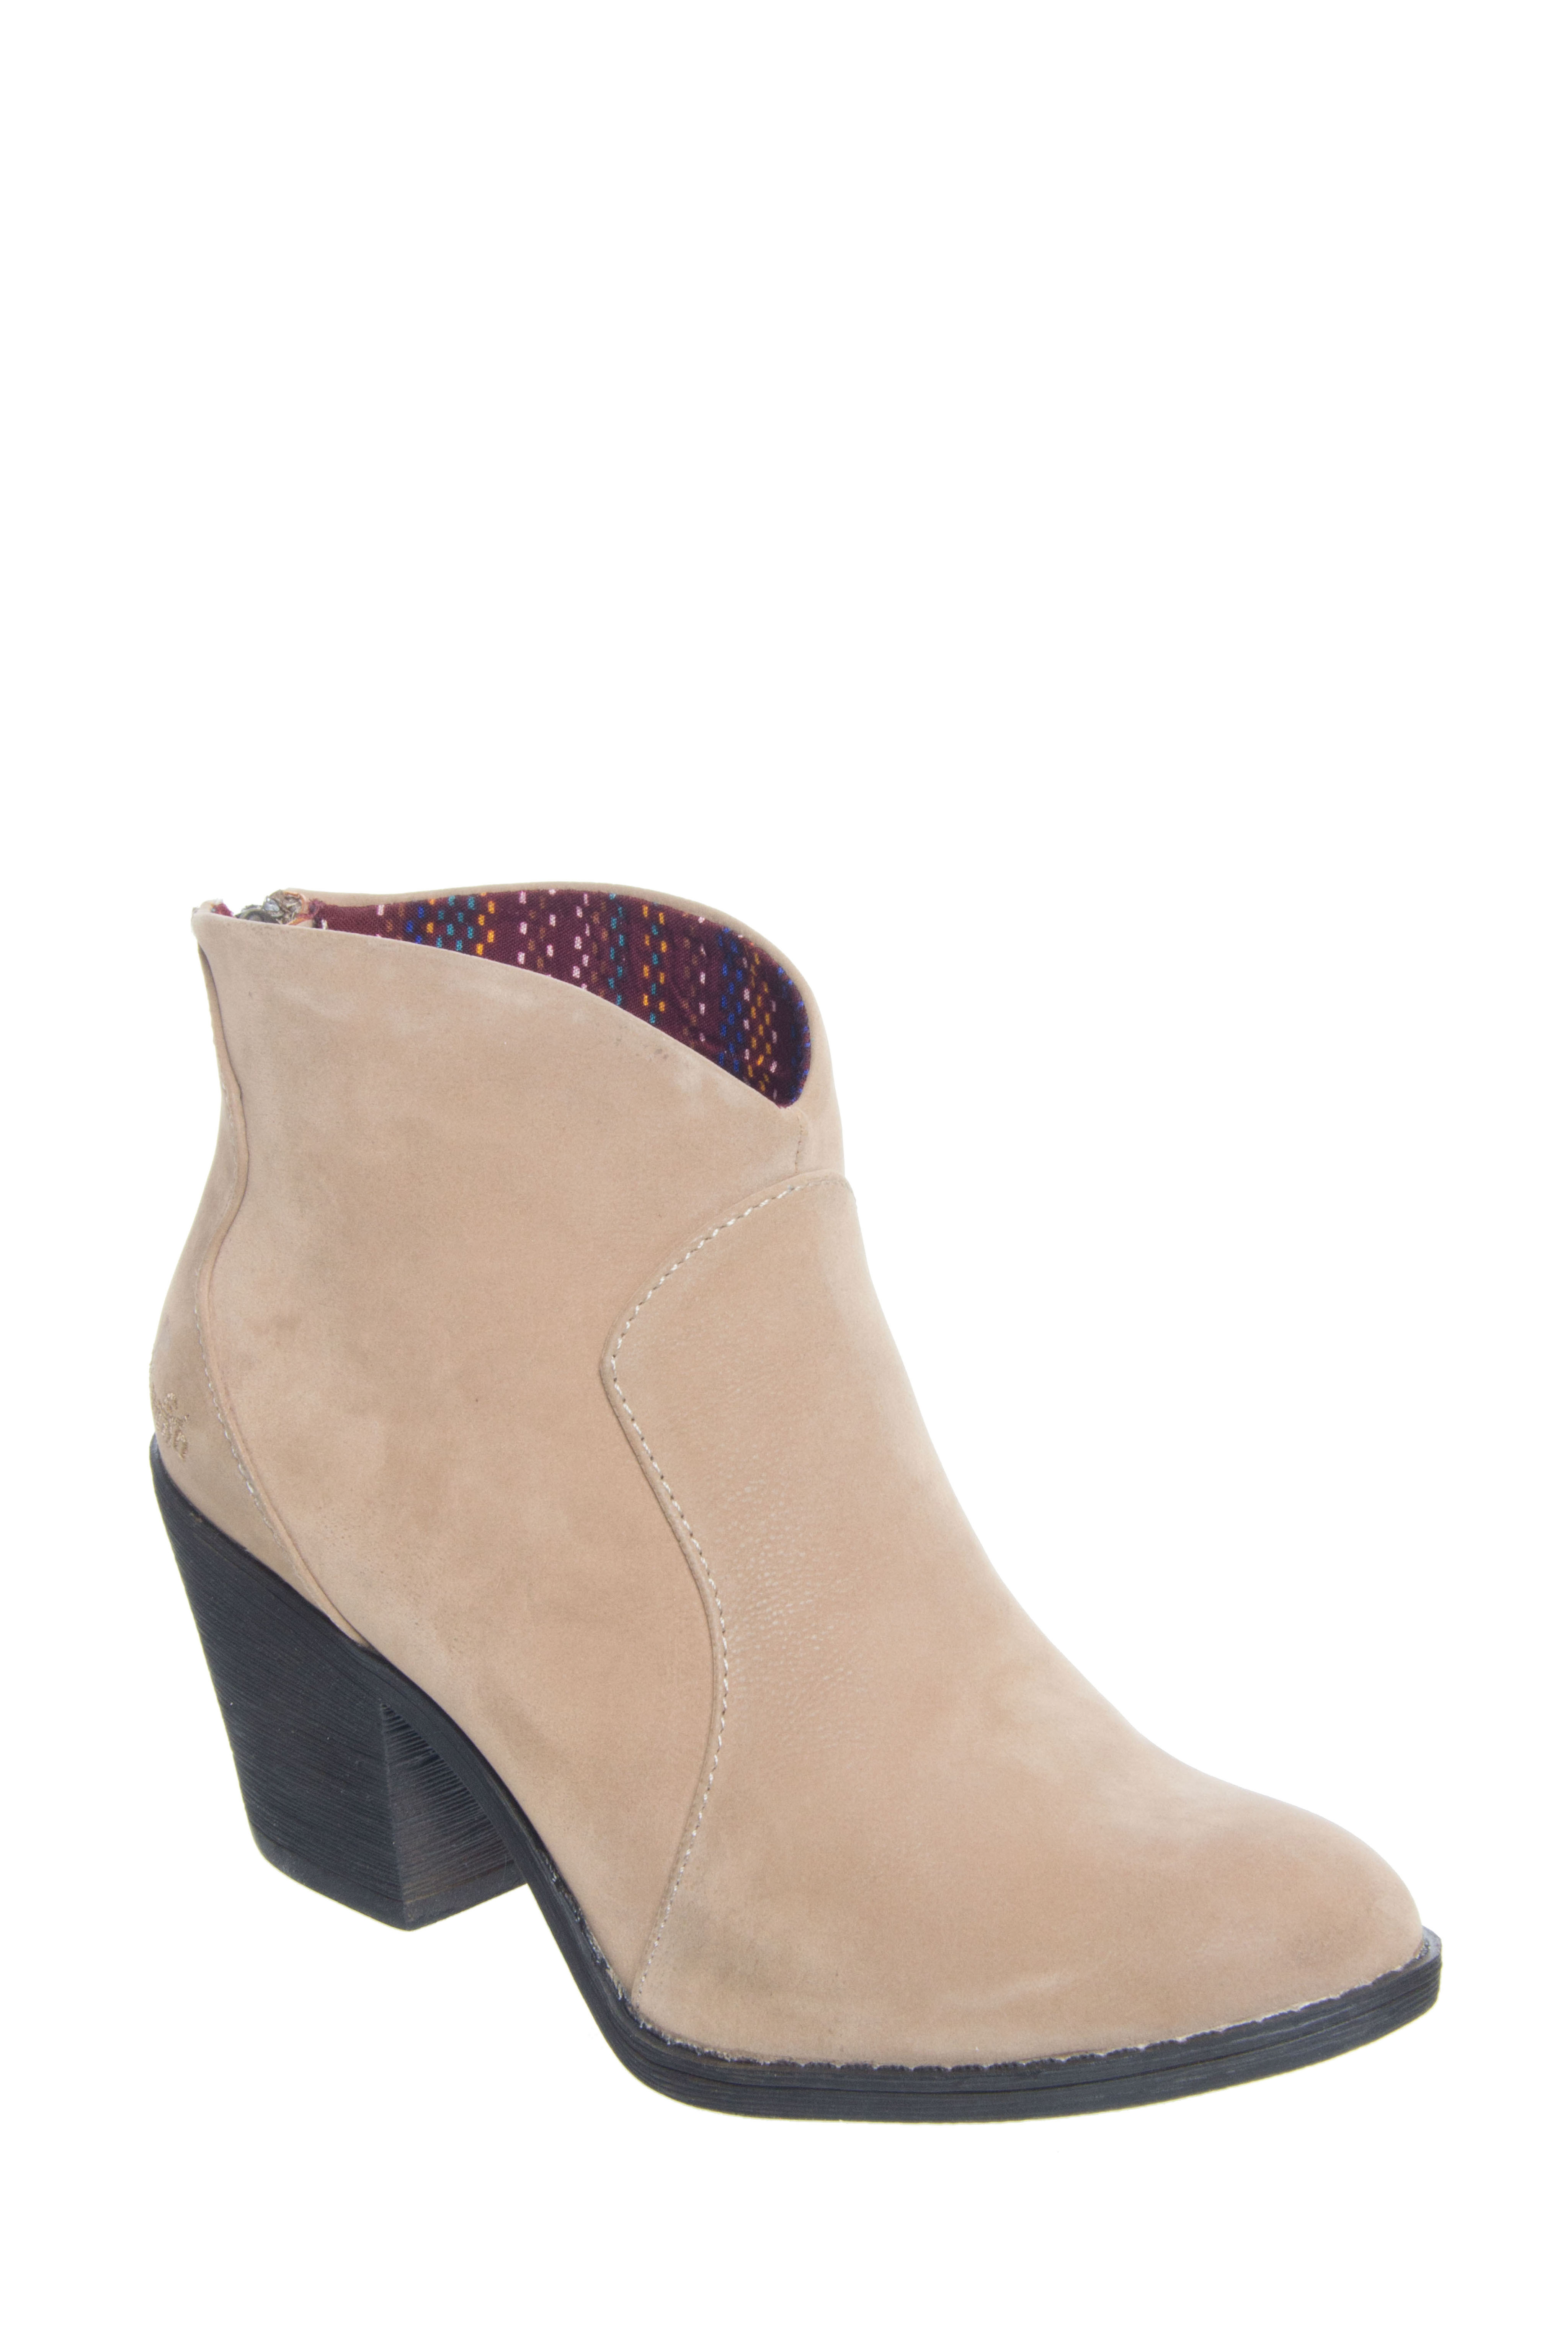 Blowfish Schloss Mid Heel Booties - Wheat Fawn